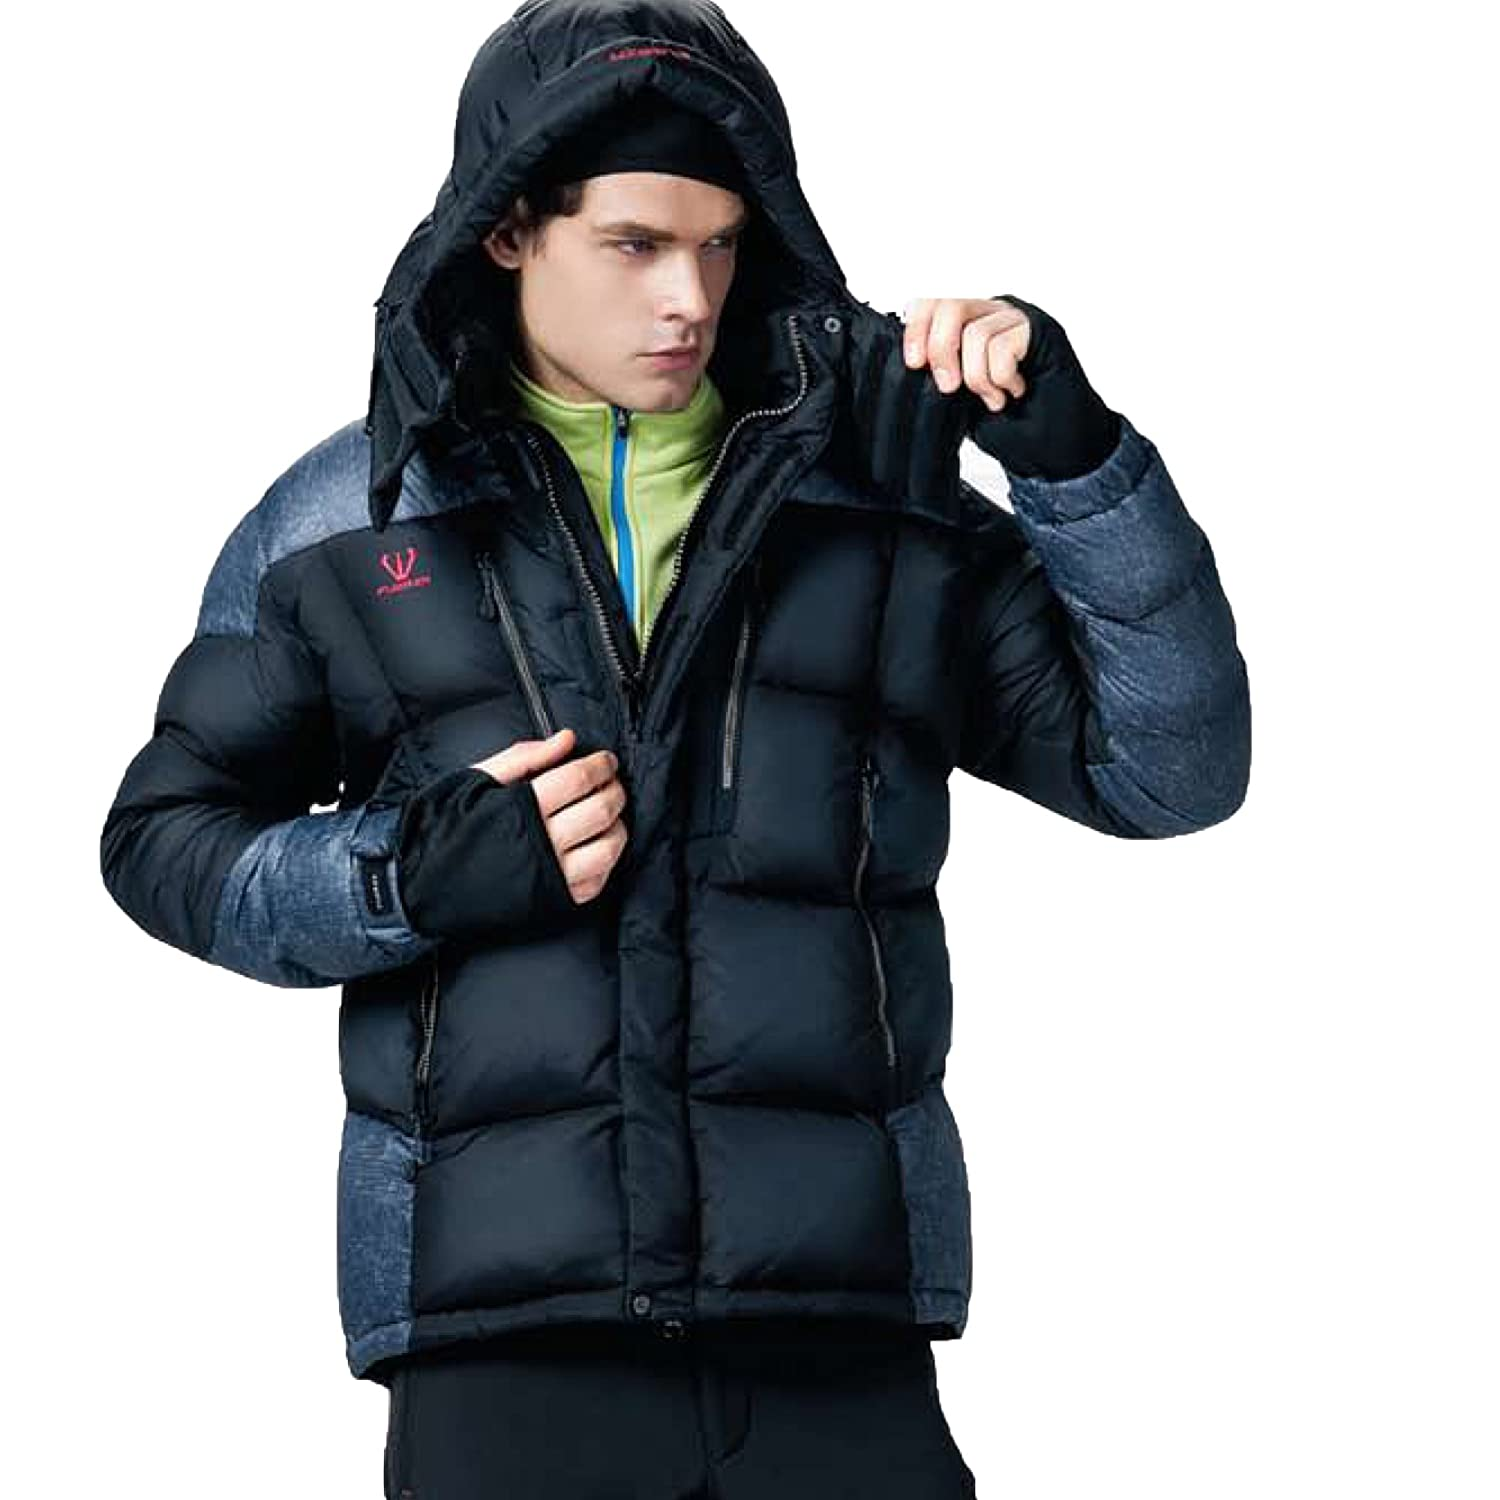 Fuerza Mens Winter Duck Feather Down Hooded Parka Jacket - Black - Small Fuerza North America